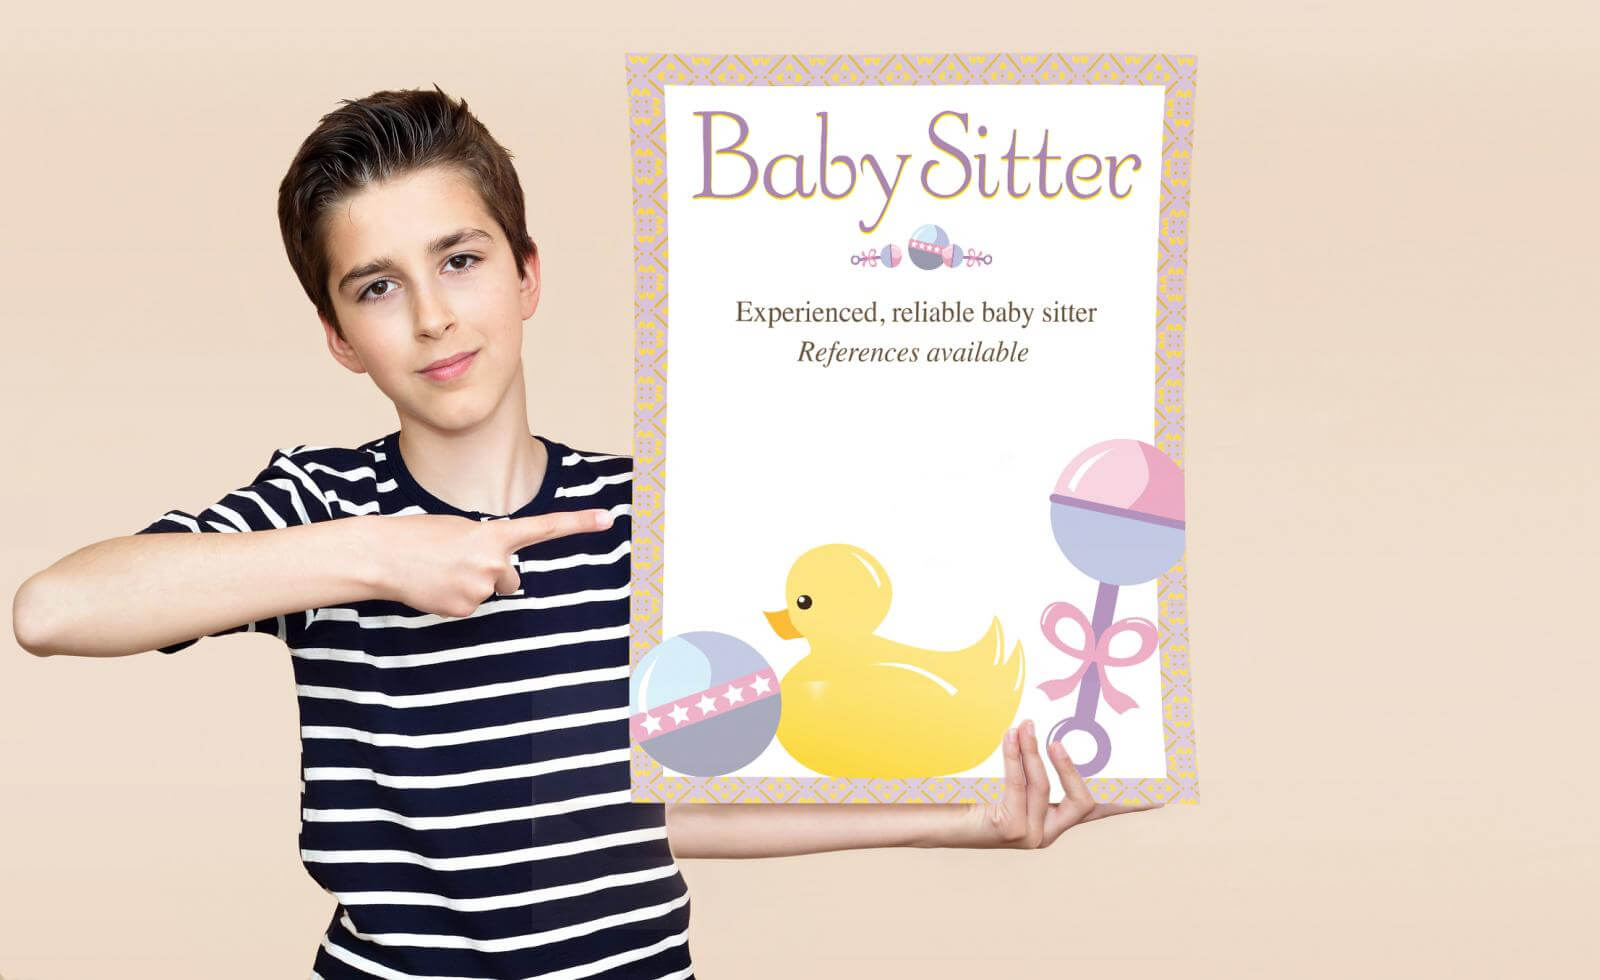 Free Babysitting Flyer Templates And Ideas | Lovetoknow Intended For Babysitting Flyer Free Template